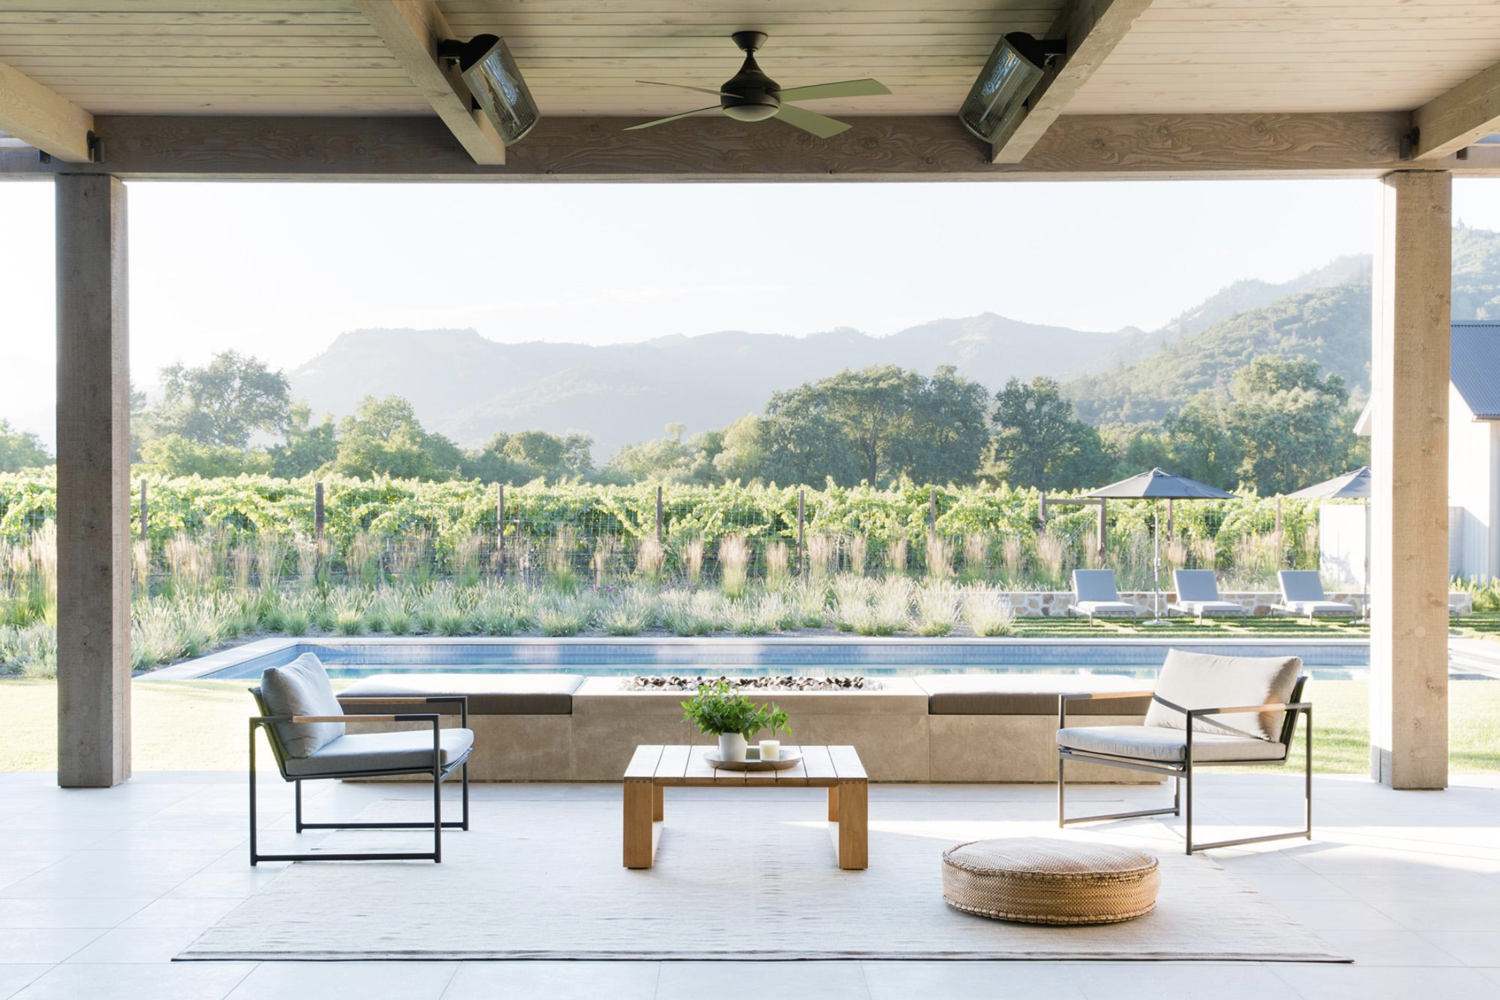 Backyard Bliss | Yet another outdoor seating area over looks the pool and vineyard.